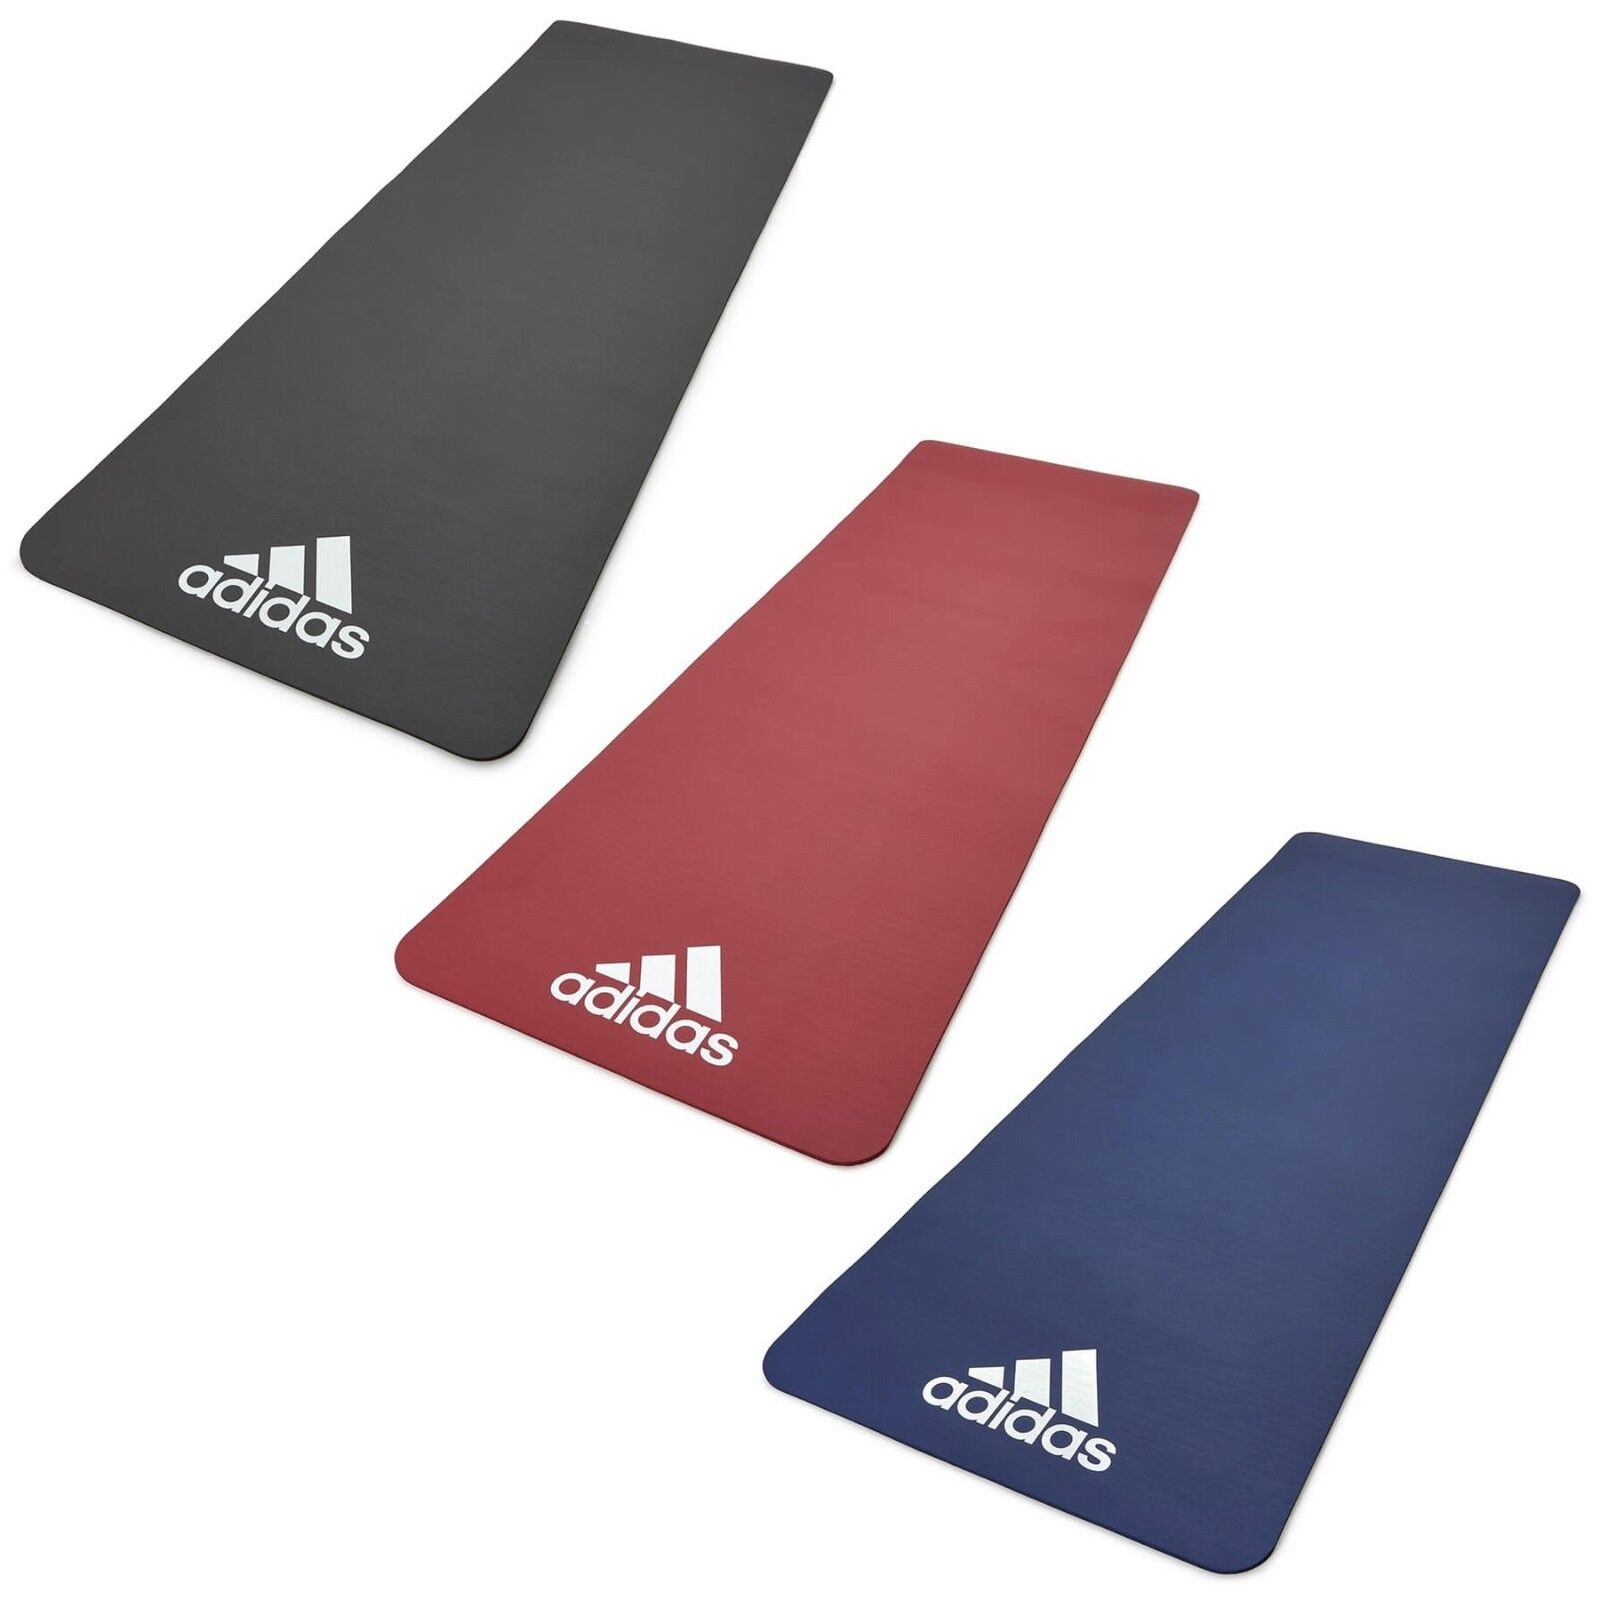 3b2cf8dfd The Adidas 7mm Training Mat is ideal for all types of floor-based  exercises. For safety